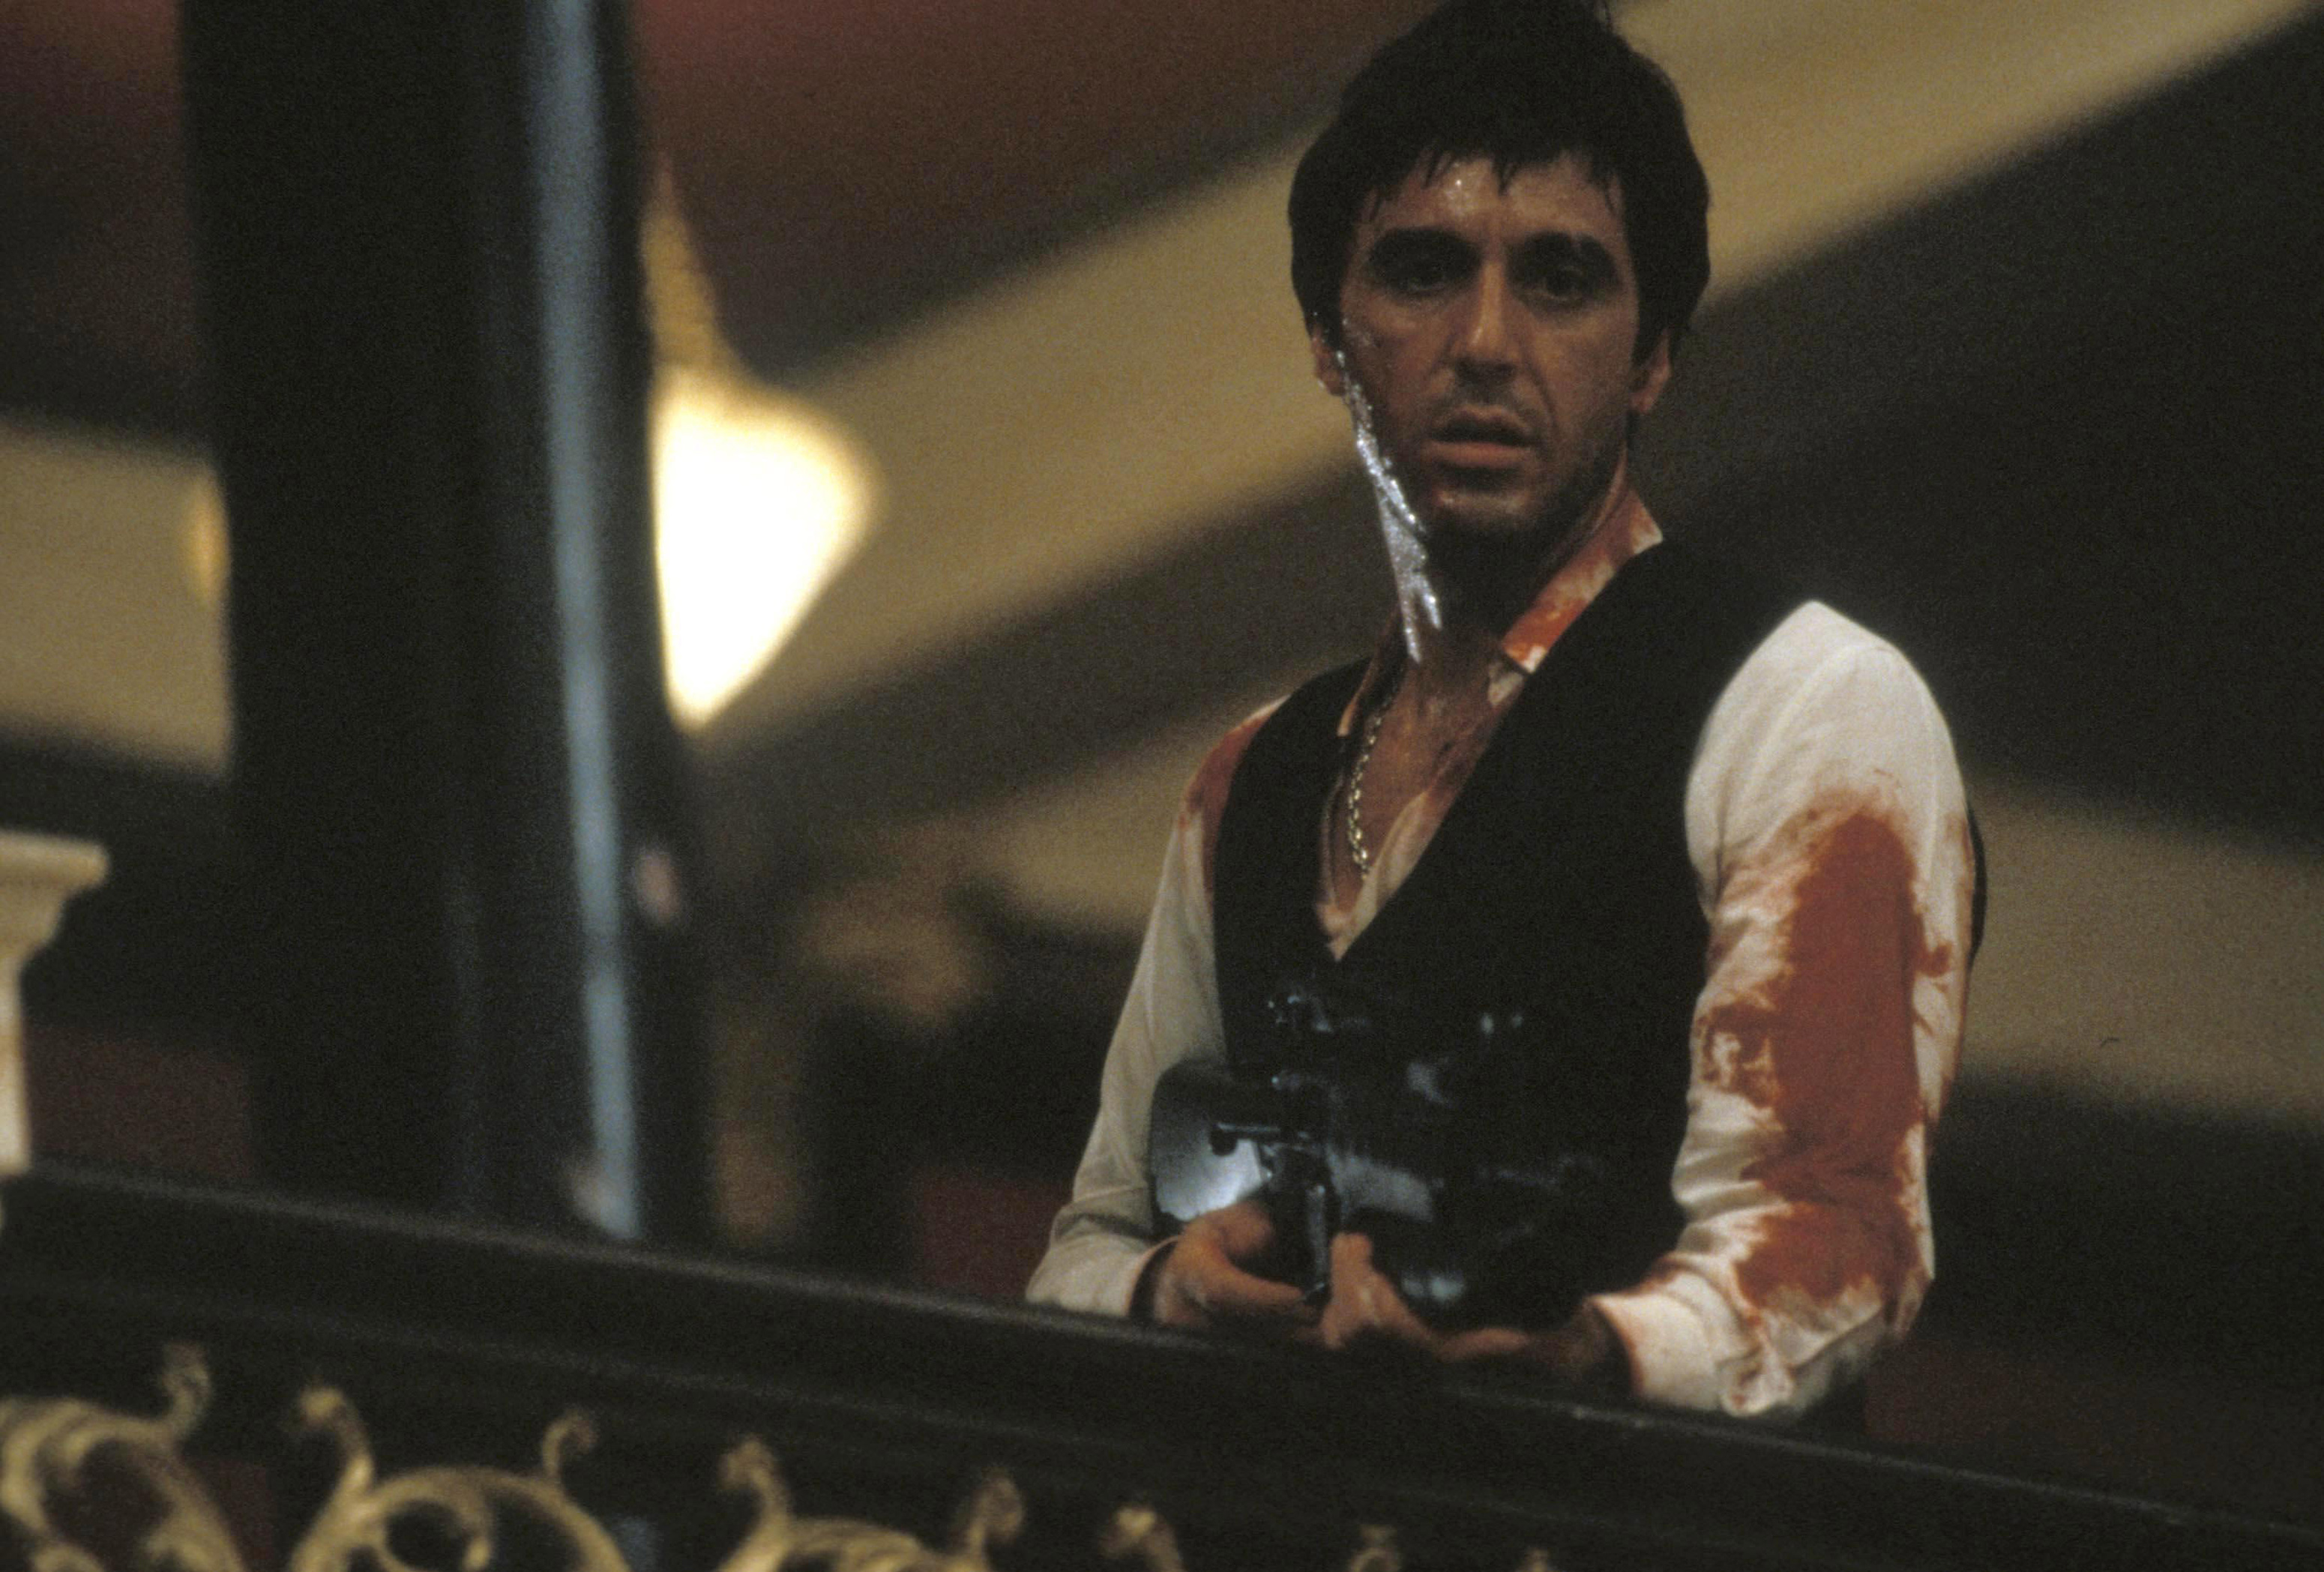 Pin Scarface Hd 5 1280x1024 3100x2097